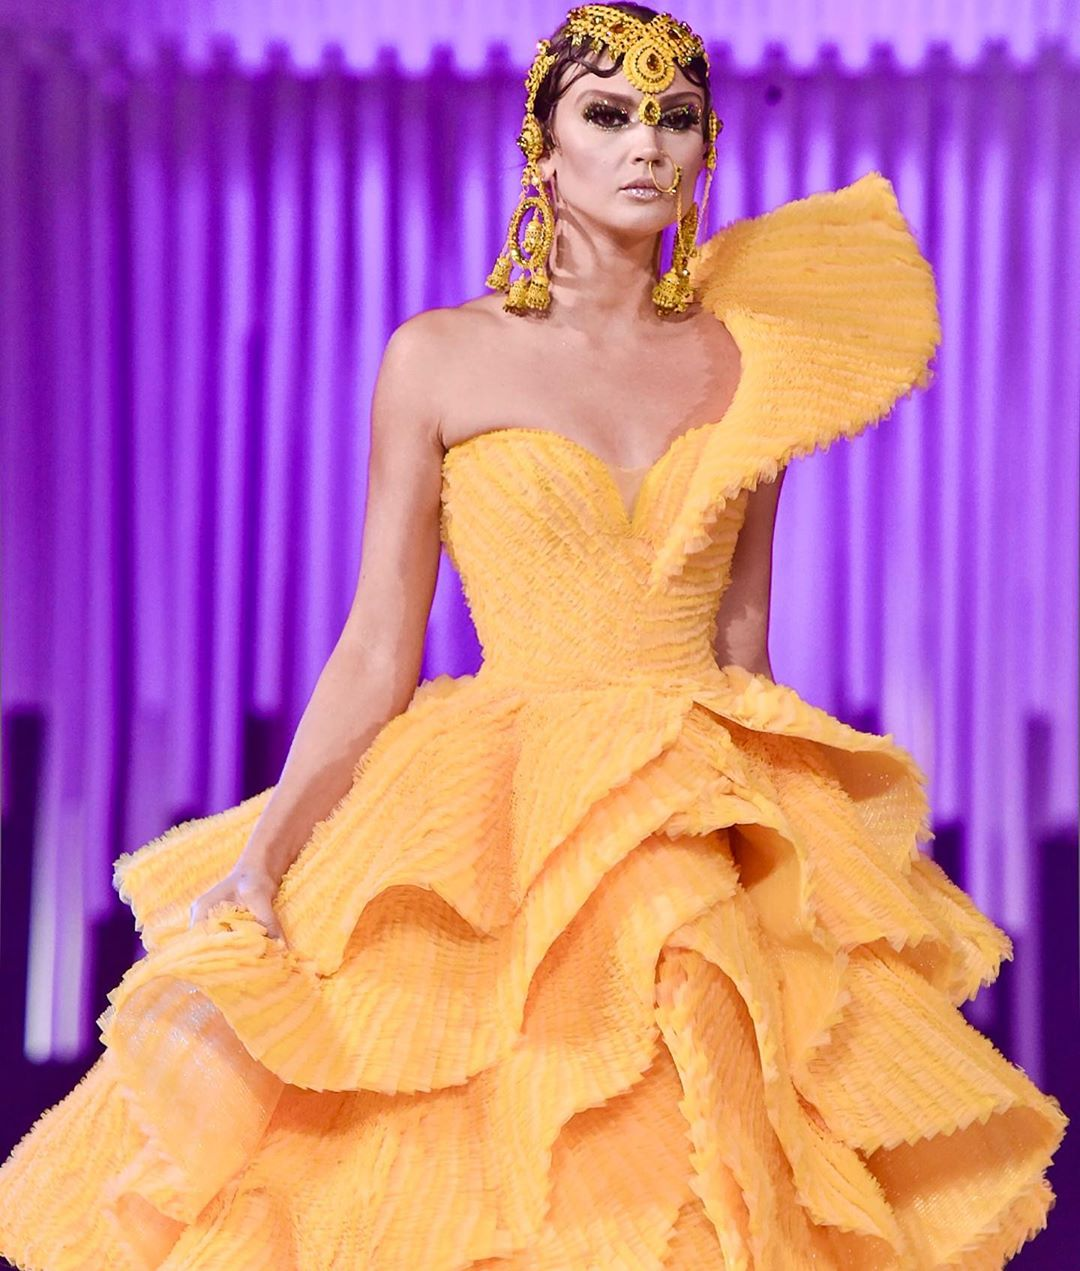 Yellow Dress with One Shoulder, Layered Skirt and Beaded Headpiece.